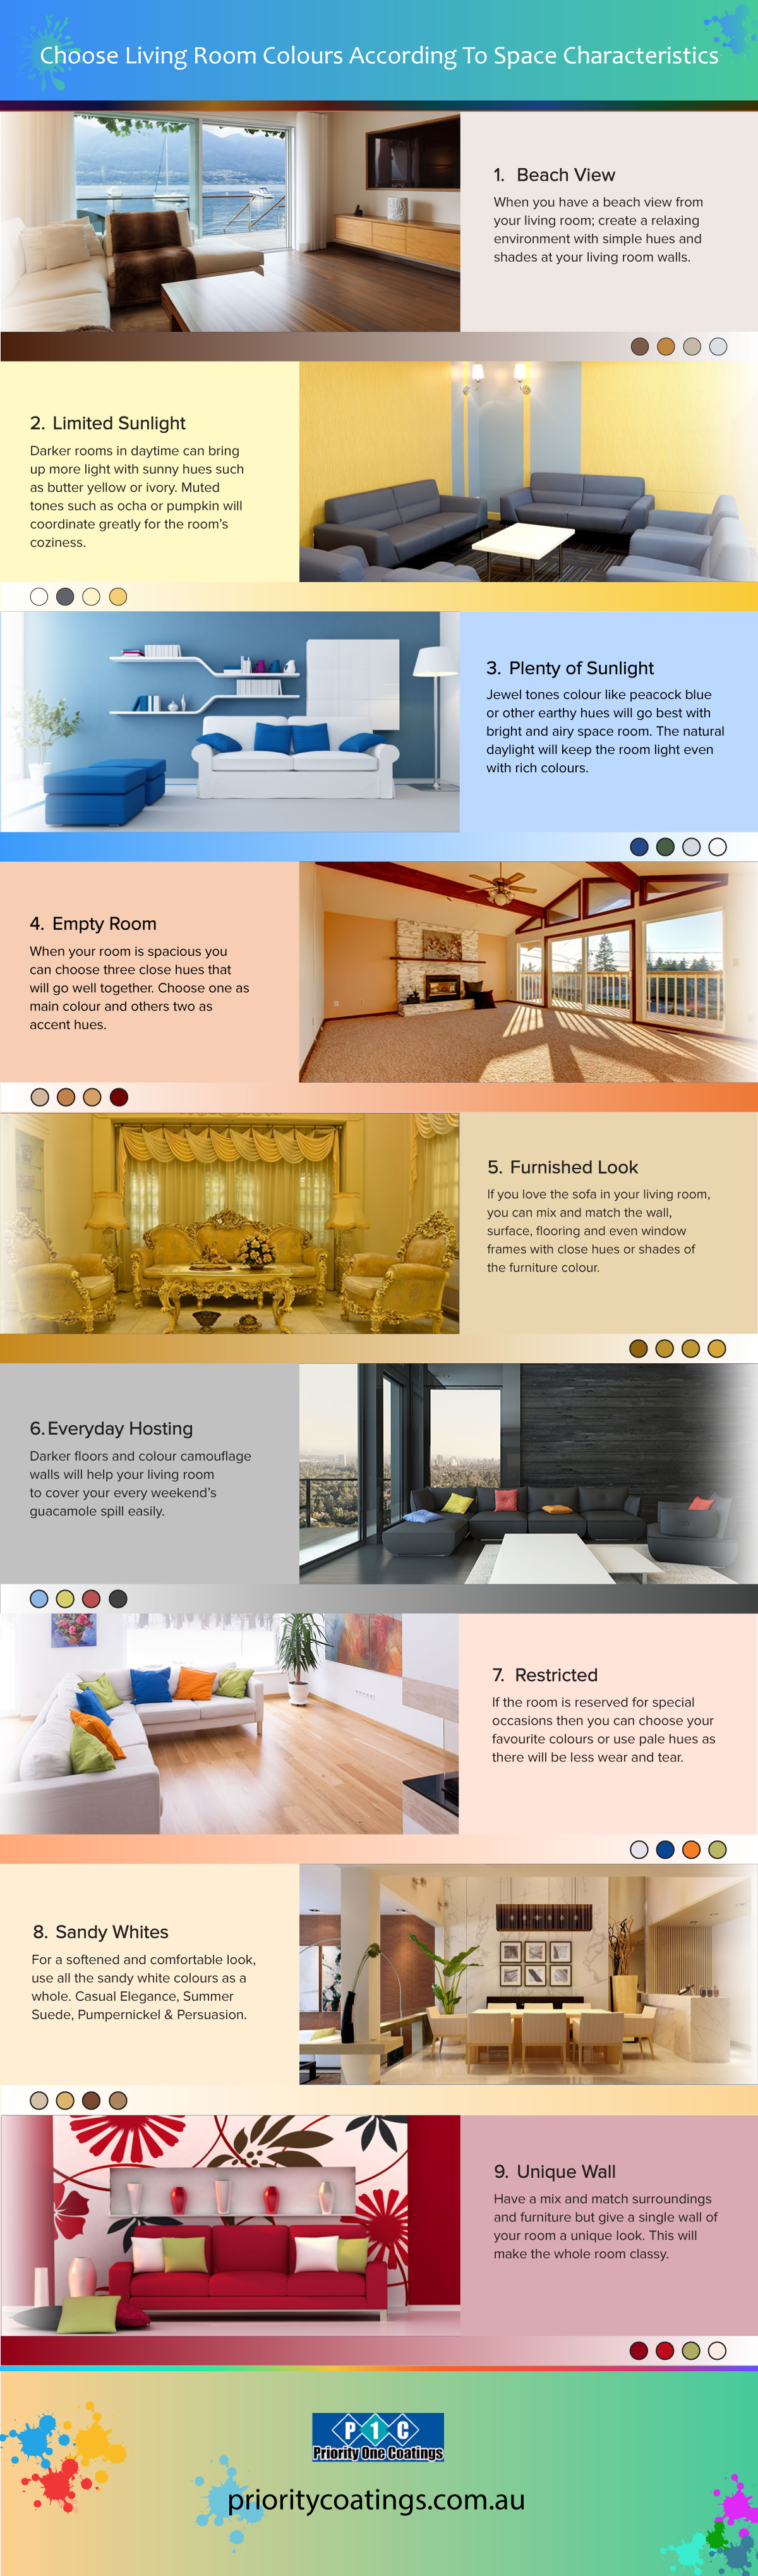 Living room paiting tips infographic